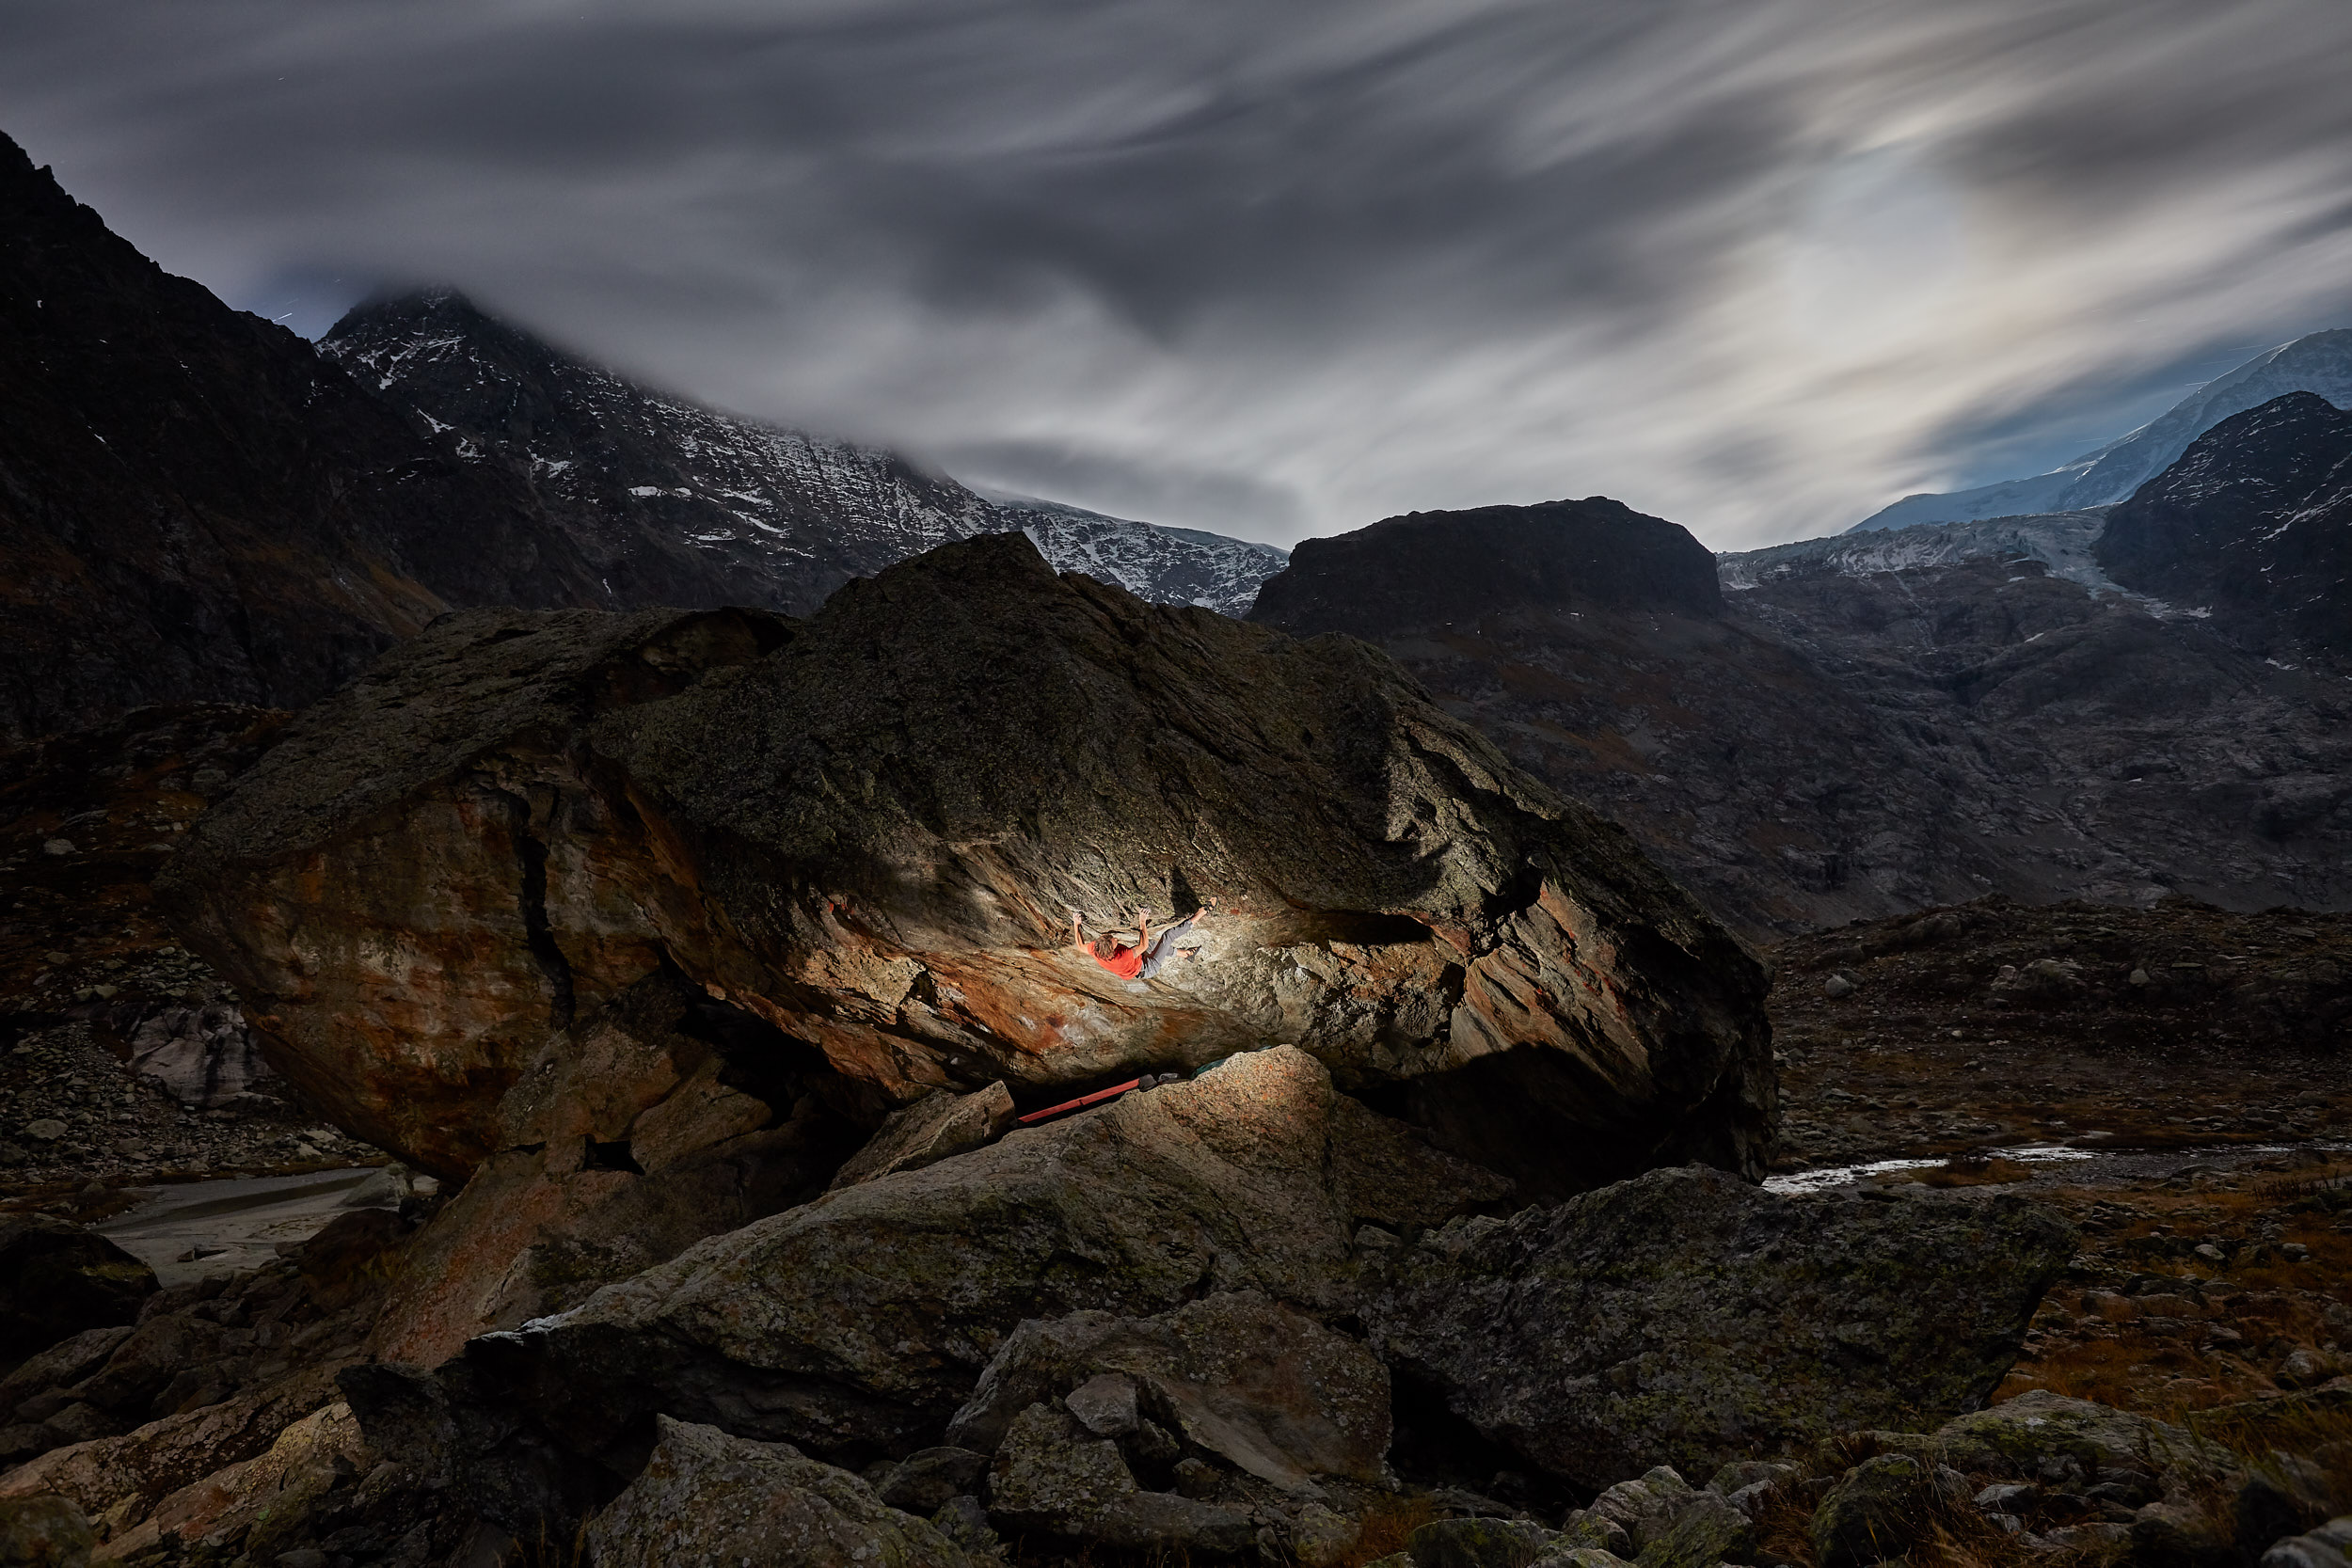 Steingletscher night bouldering  | Stefan Kuerzi - Climbing Photography